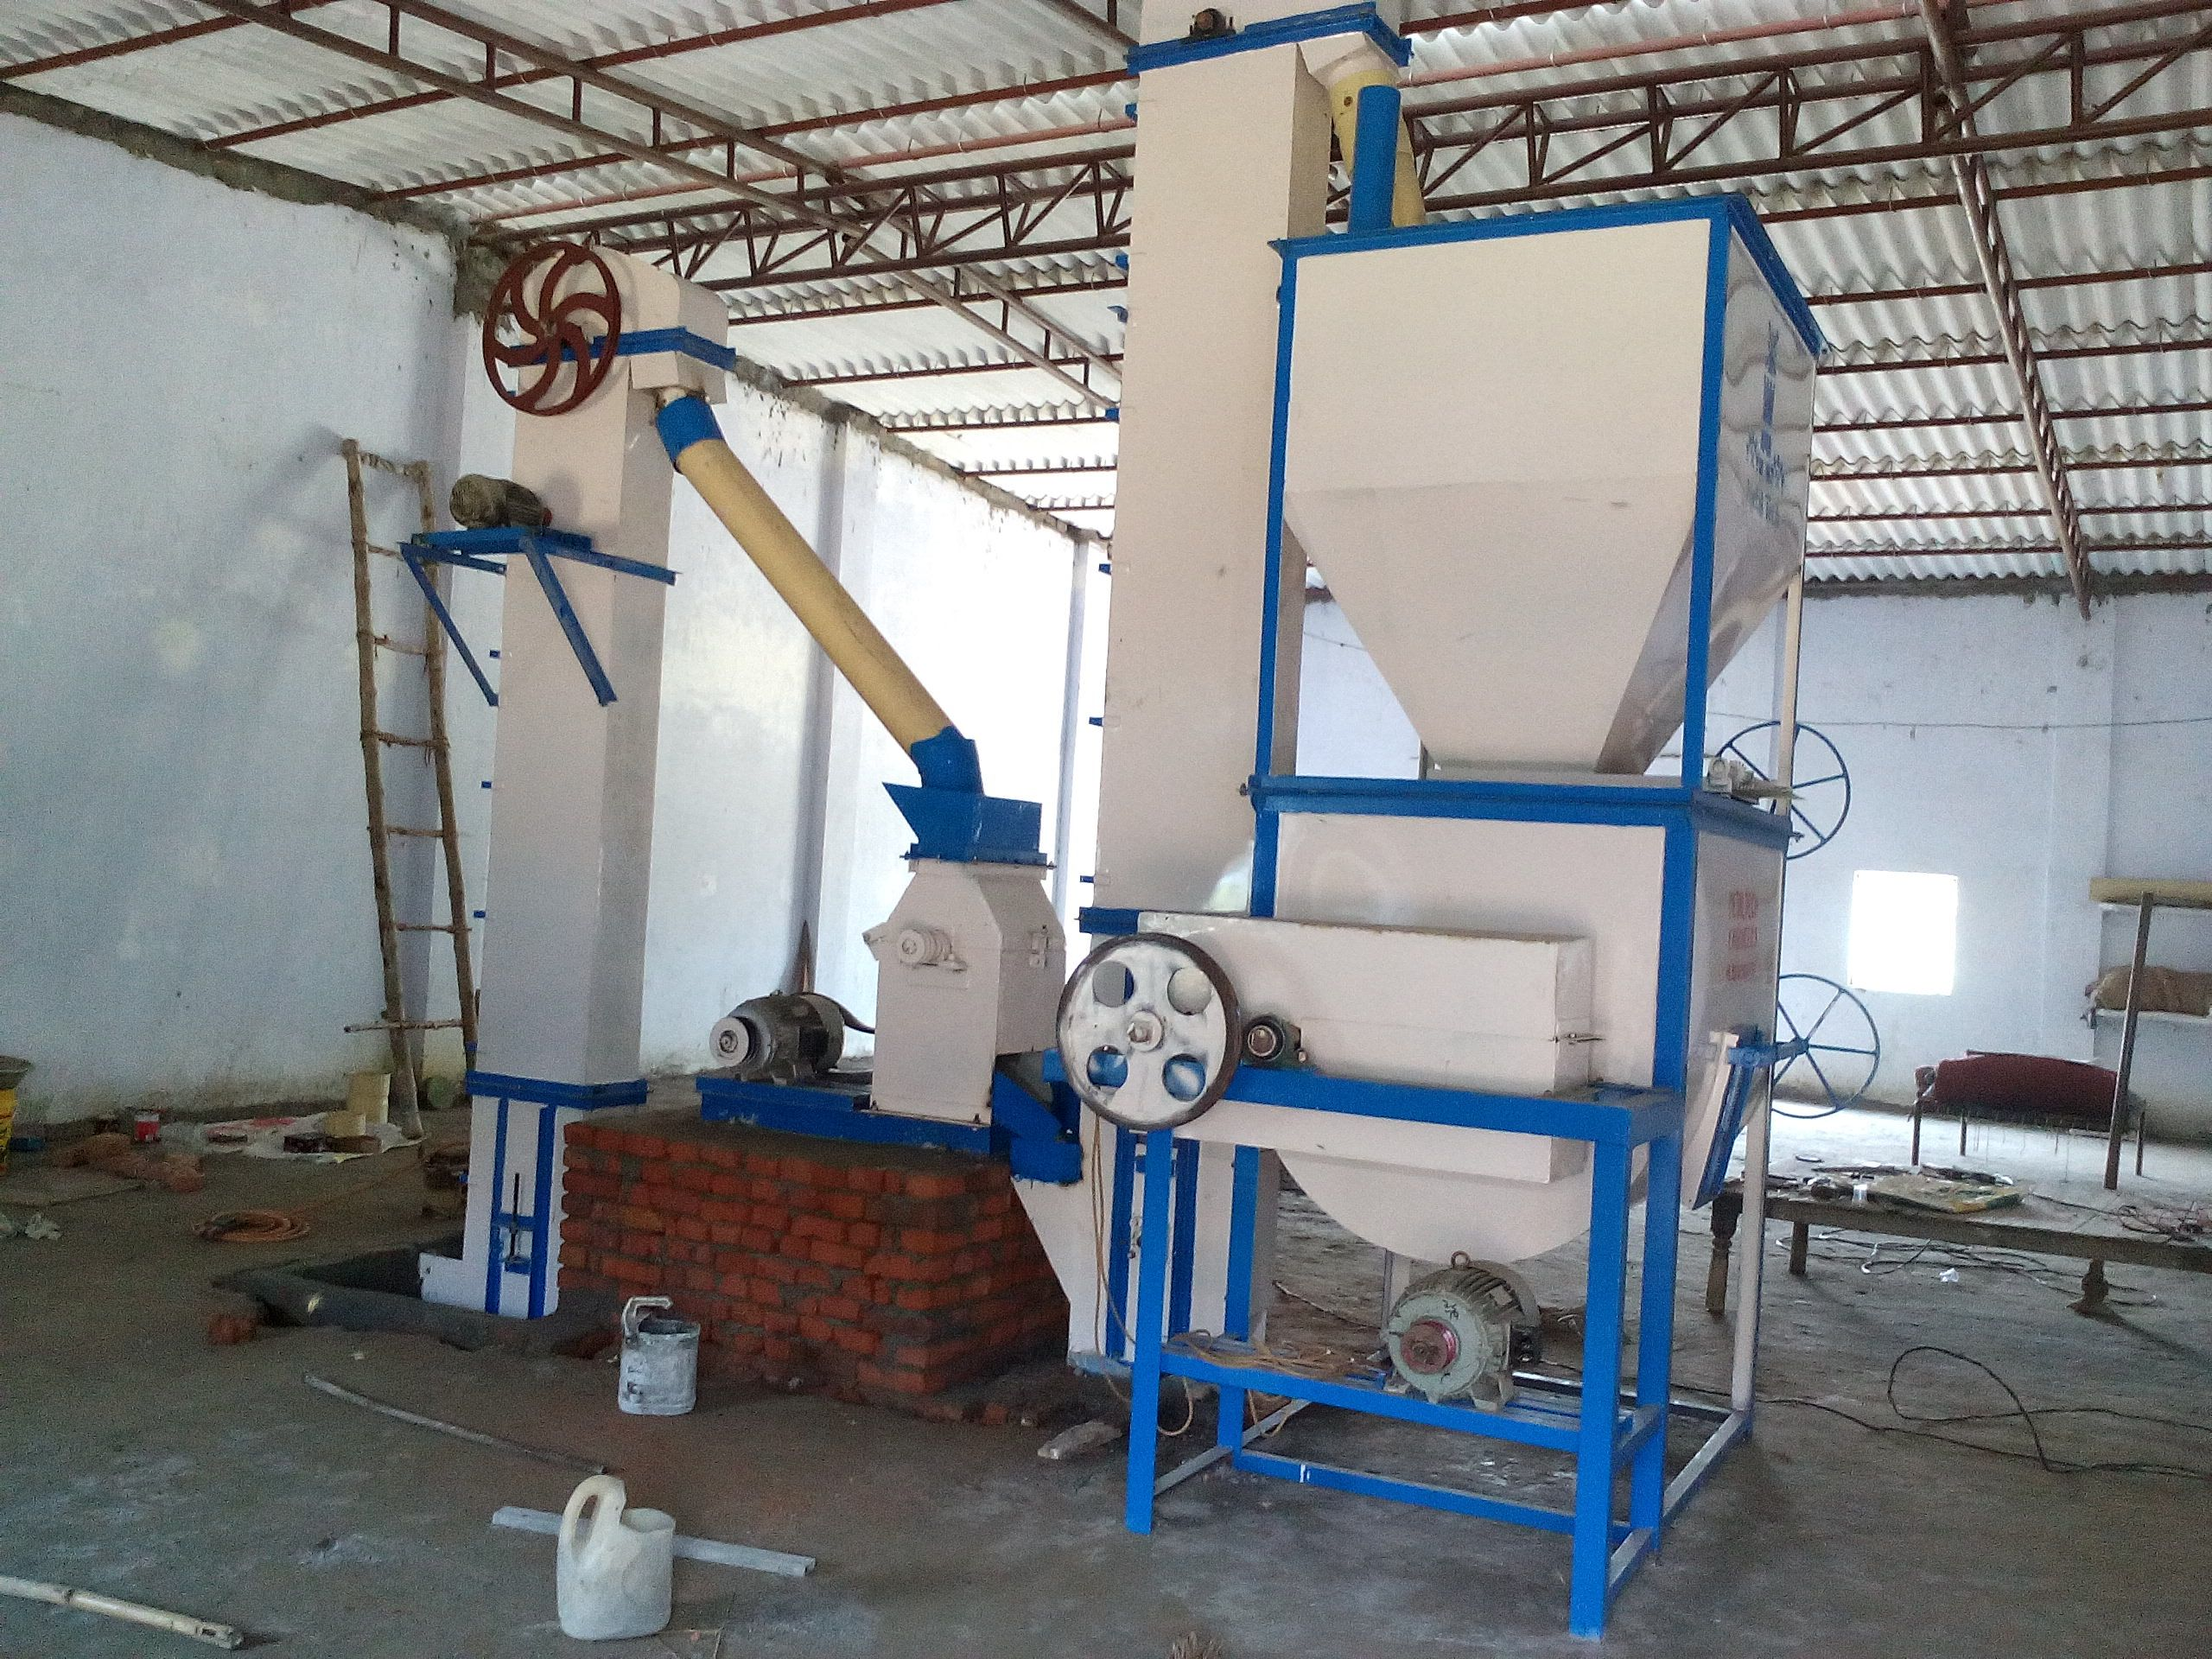 Cattle Feed Machine S G Engineer Is A Reputed Manufacturer Exporter And Supplier Of Cattle Feed Machine The Provided Machine Is Manufactured As Per Industrial